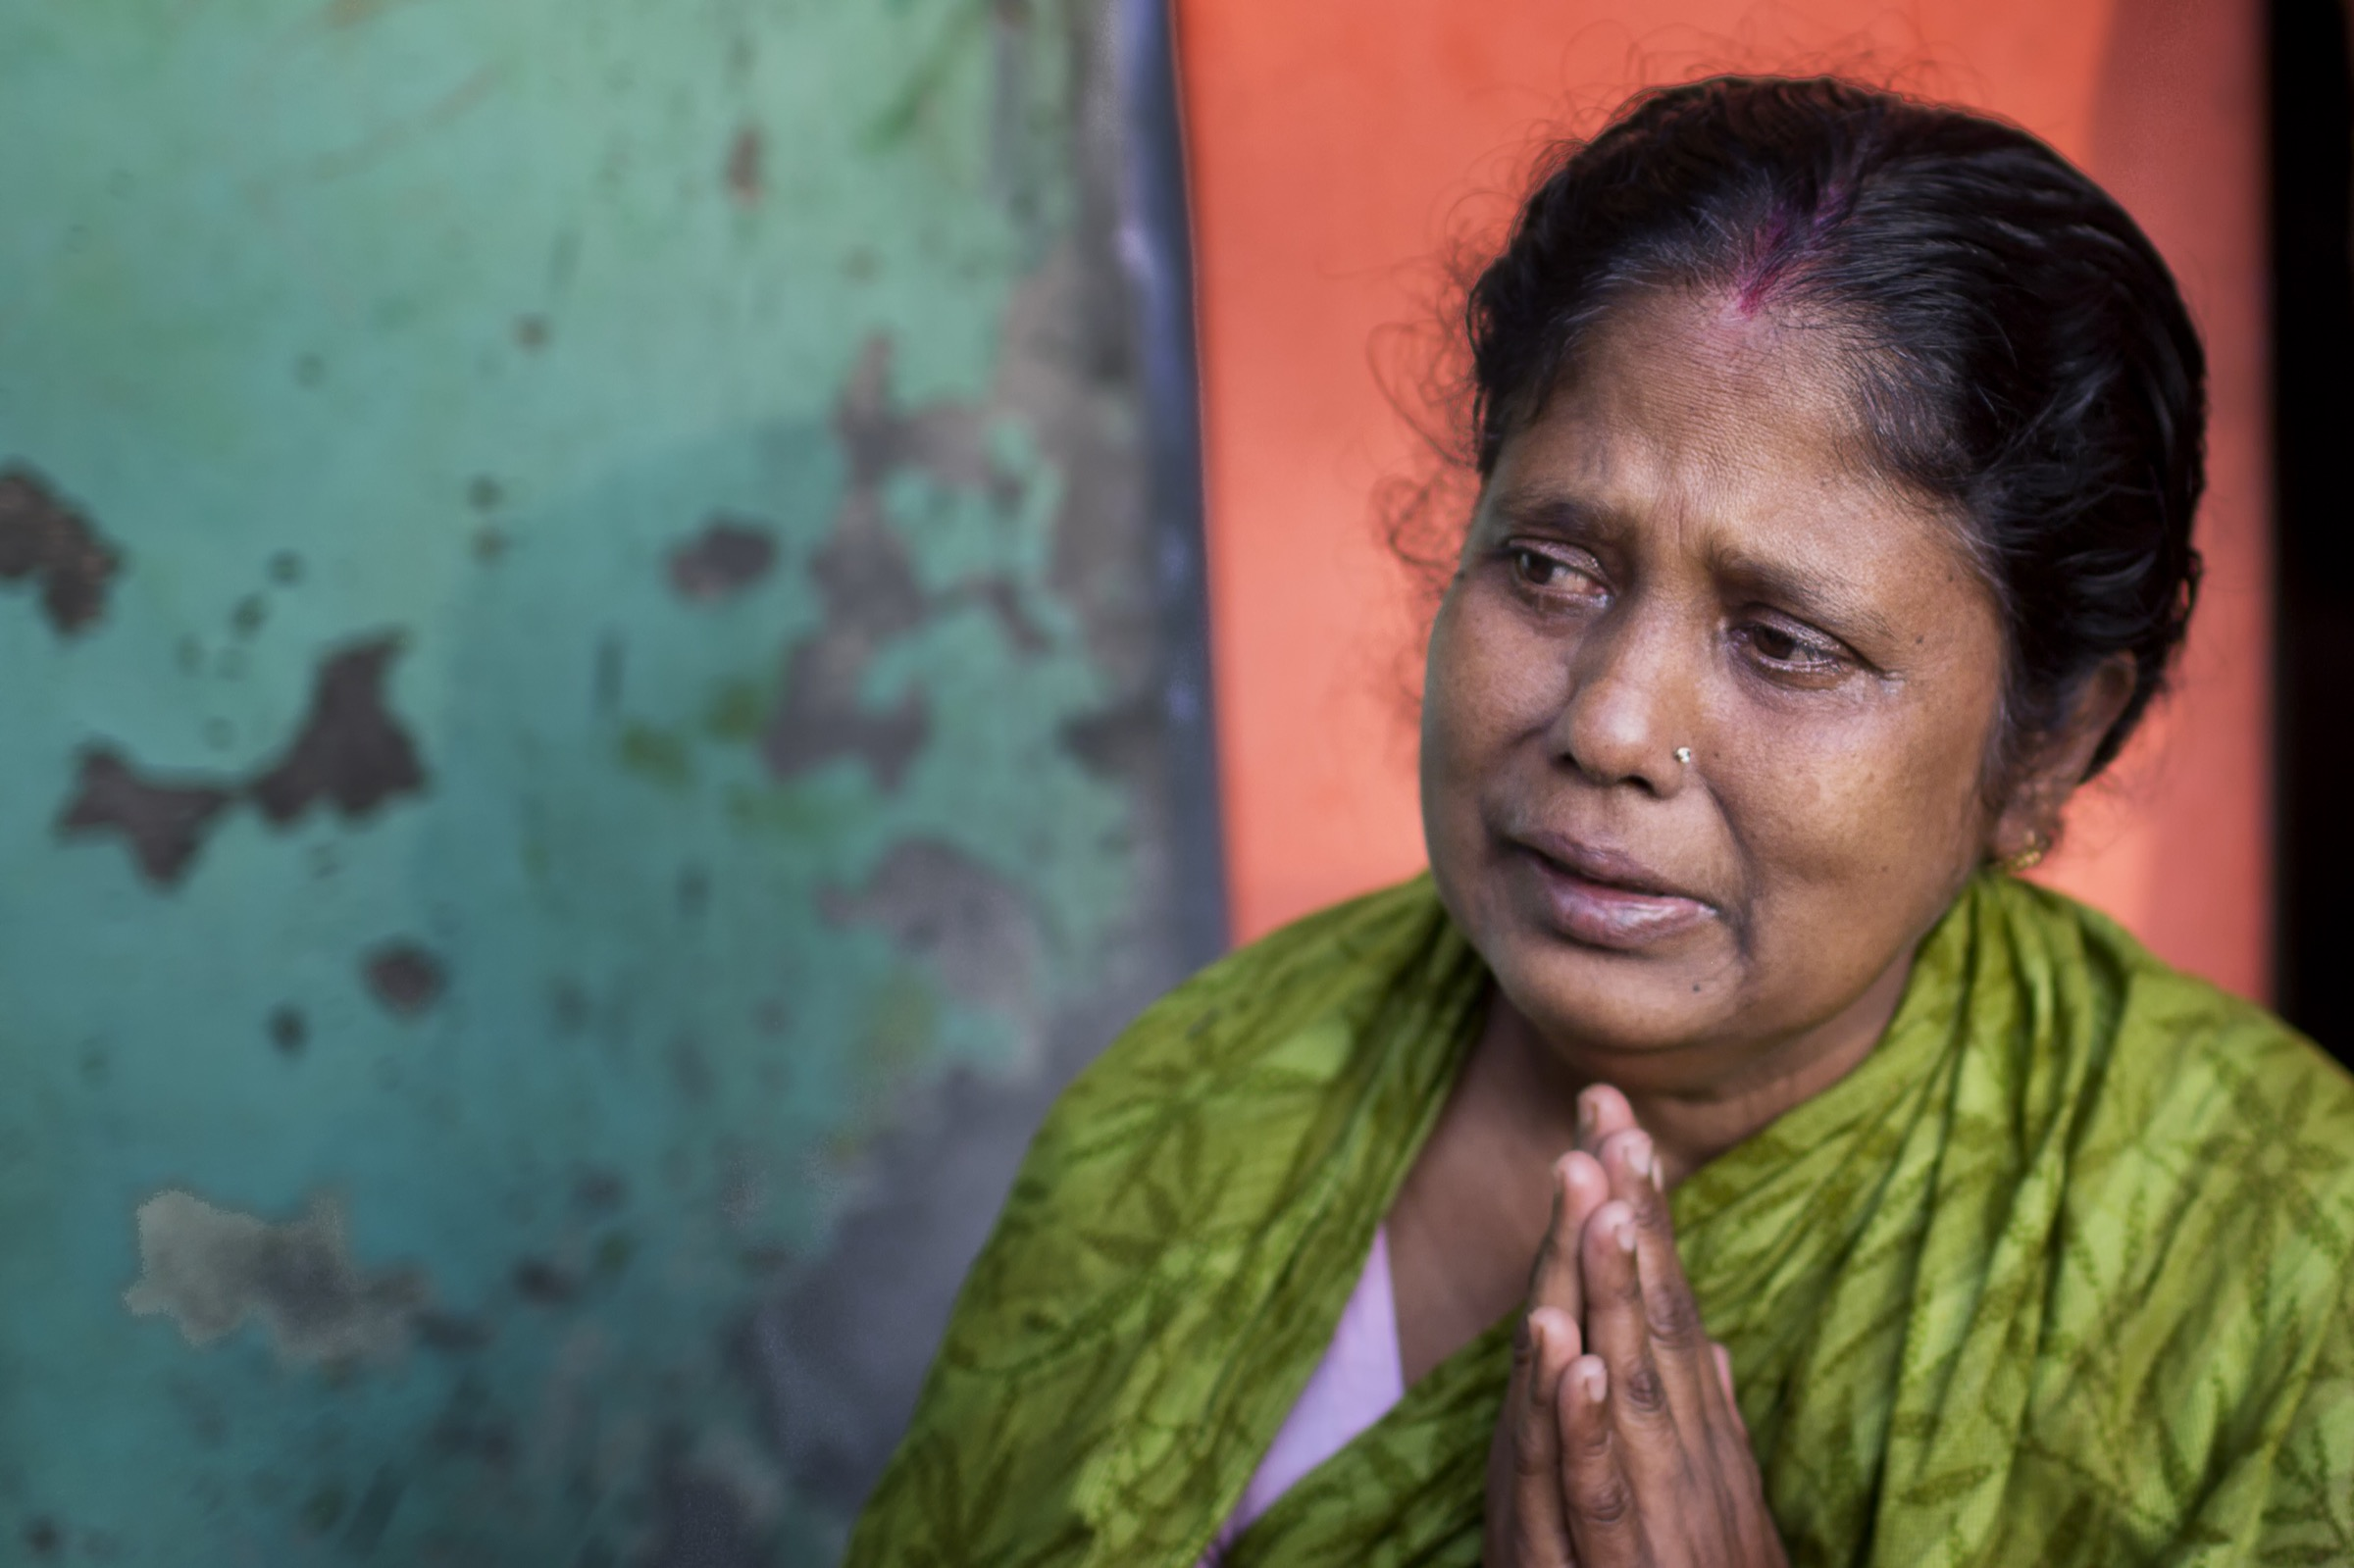 Since 2001, when Nipah virus was first recognized in Bangladesh, the pathogen has taken a heavy toll. This mother in Faridpur prays for her son who fell ill after drinking date palm sap during a gathering to celebrate his graduation from high school. He has since died. Photograph by A.M. Ahad